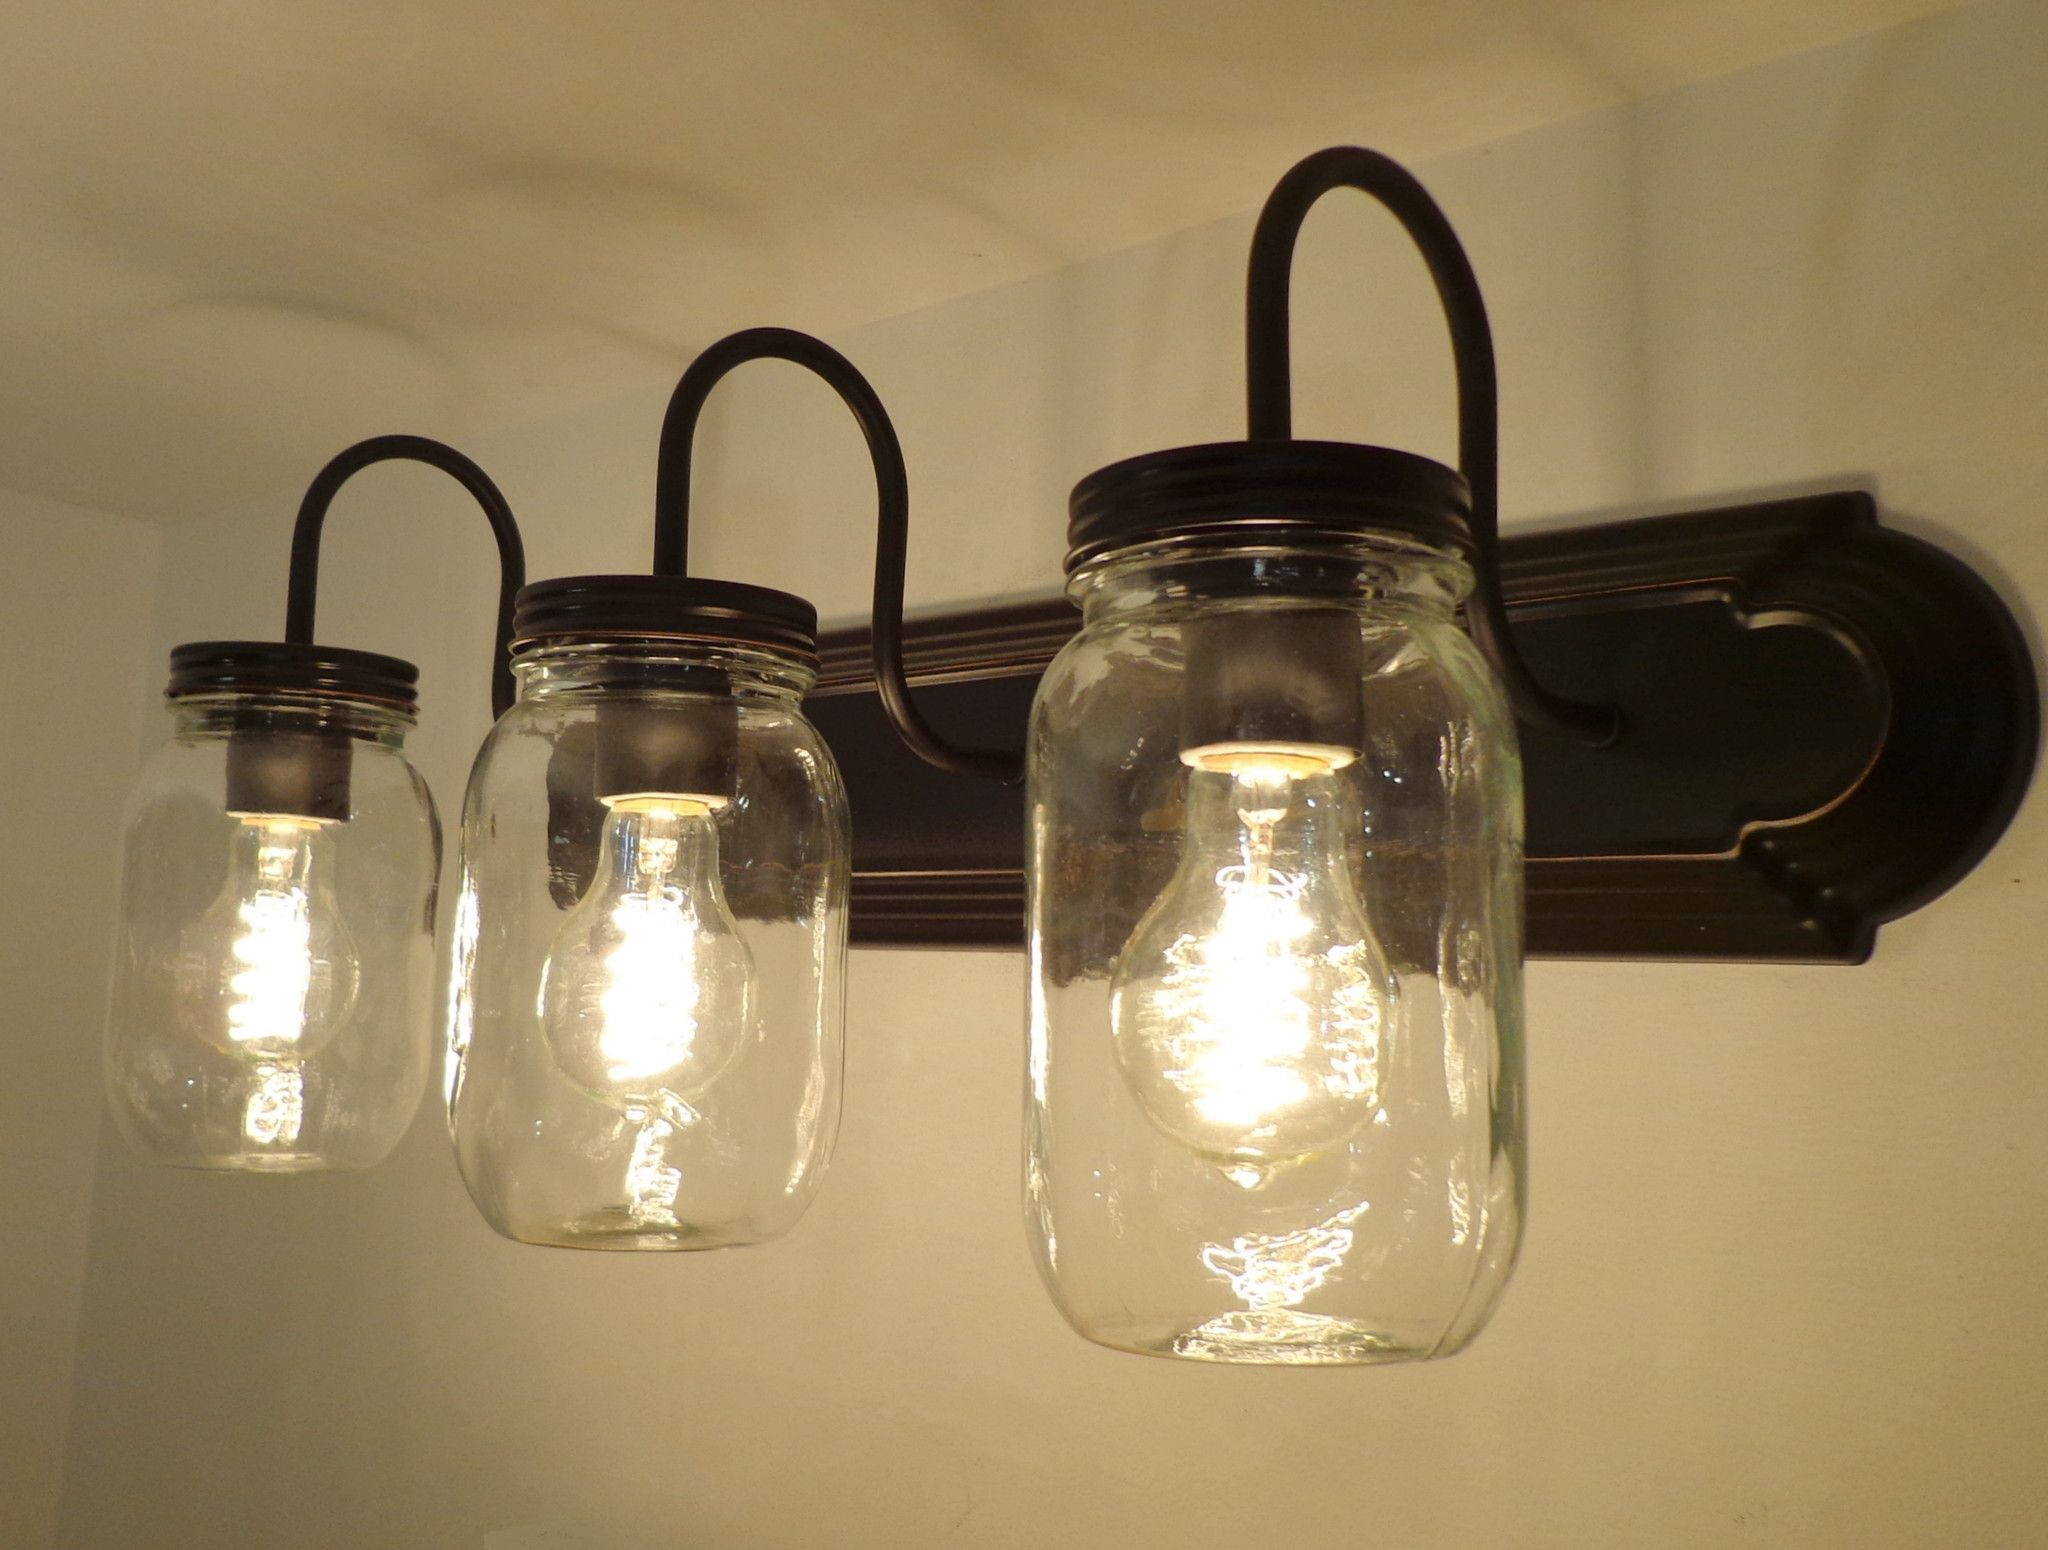 Mason Jar Bathroom Light Mason Jar Bathroom Vanity Wide Mouth 3 Light Clear Mason Jar